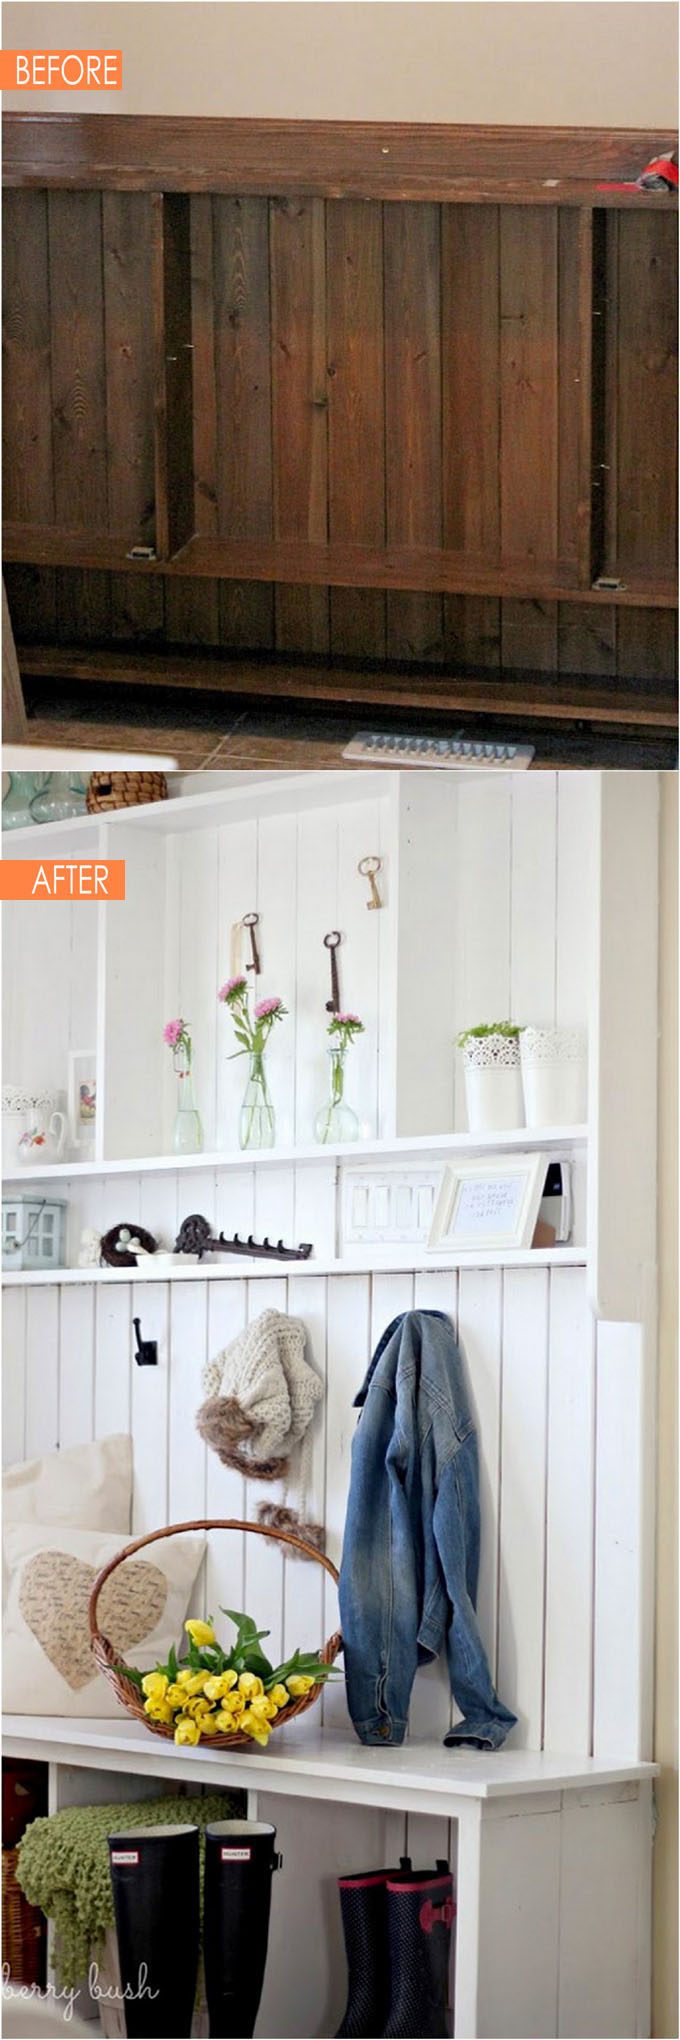 20-entryway-before-after-apieceofrainbowblog-6